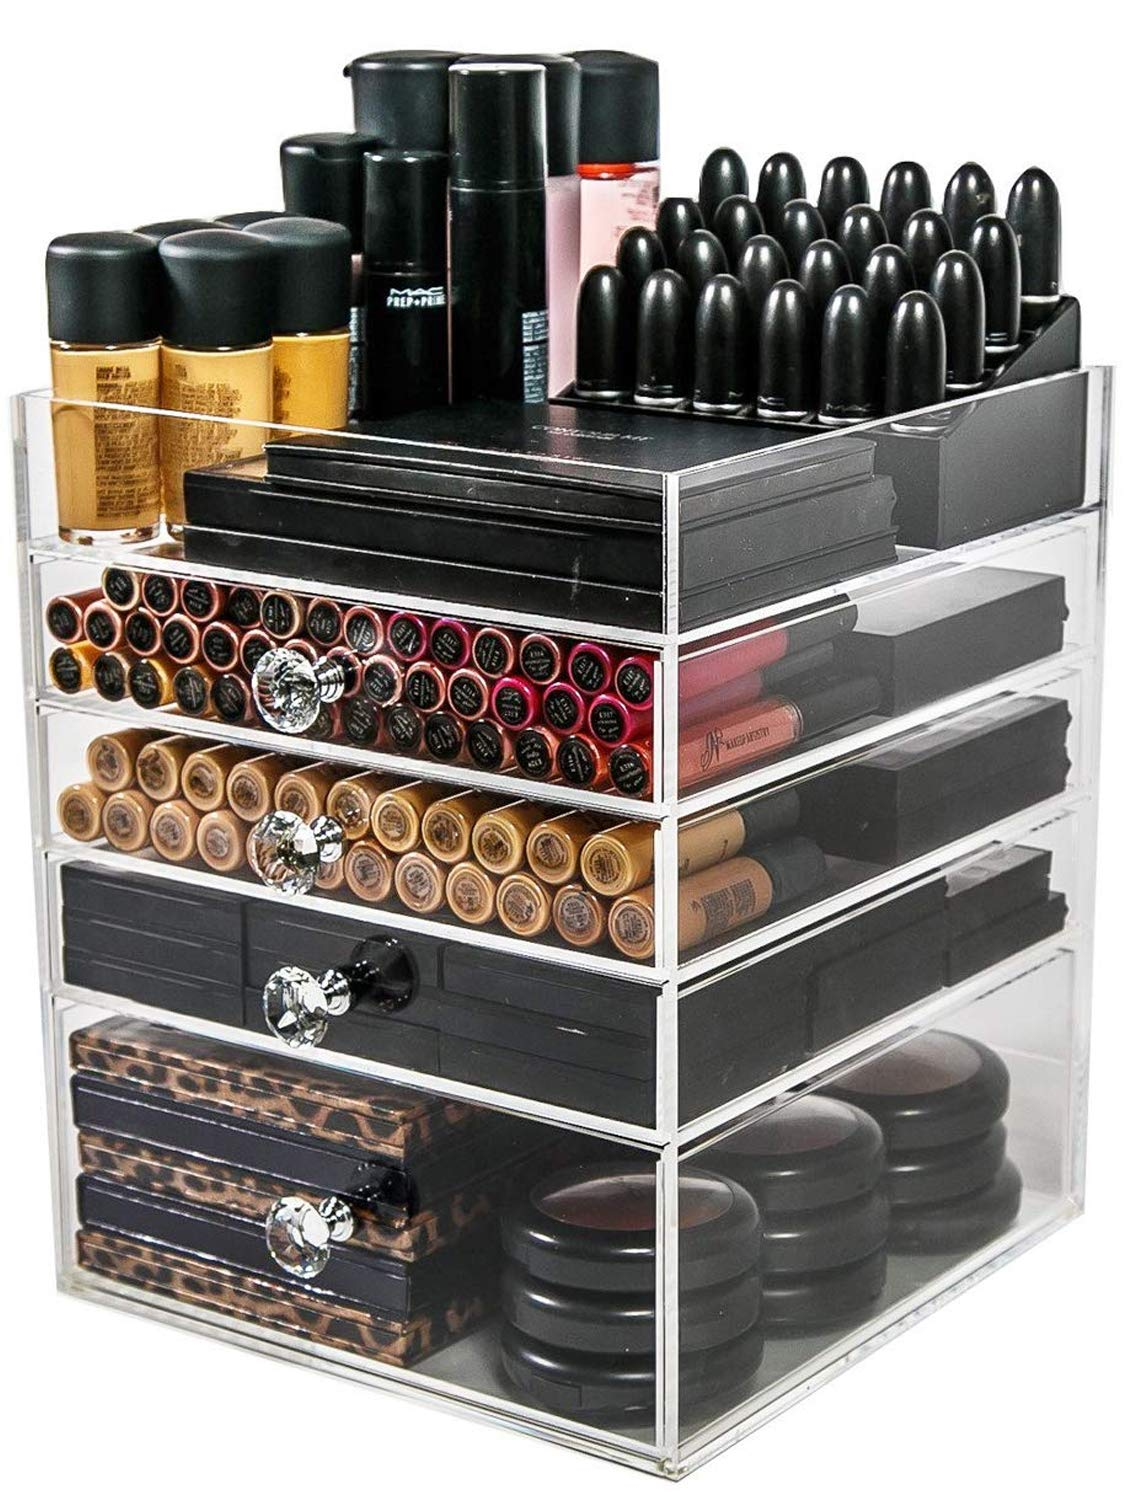 N2 Makeup Co Acrylic Makeup Organizer Cube 4 Drawers Storage Box for Vanity Tables